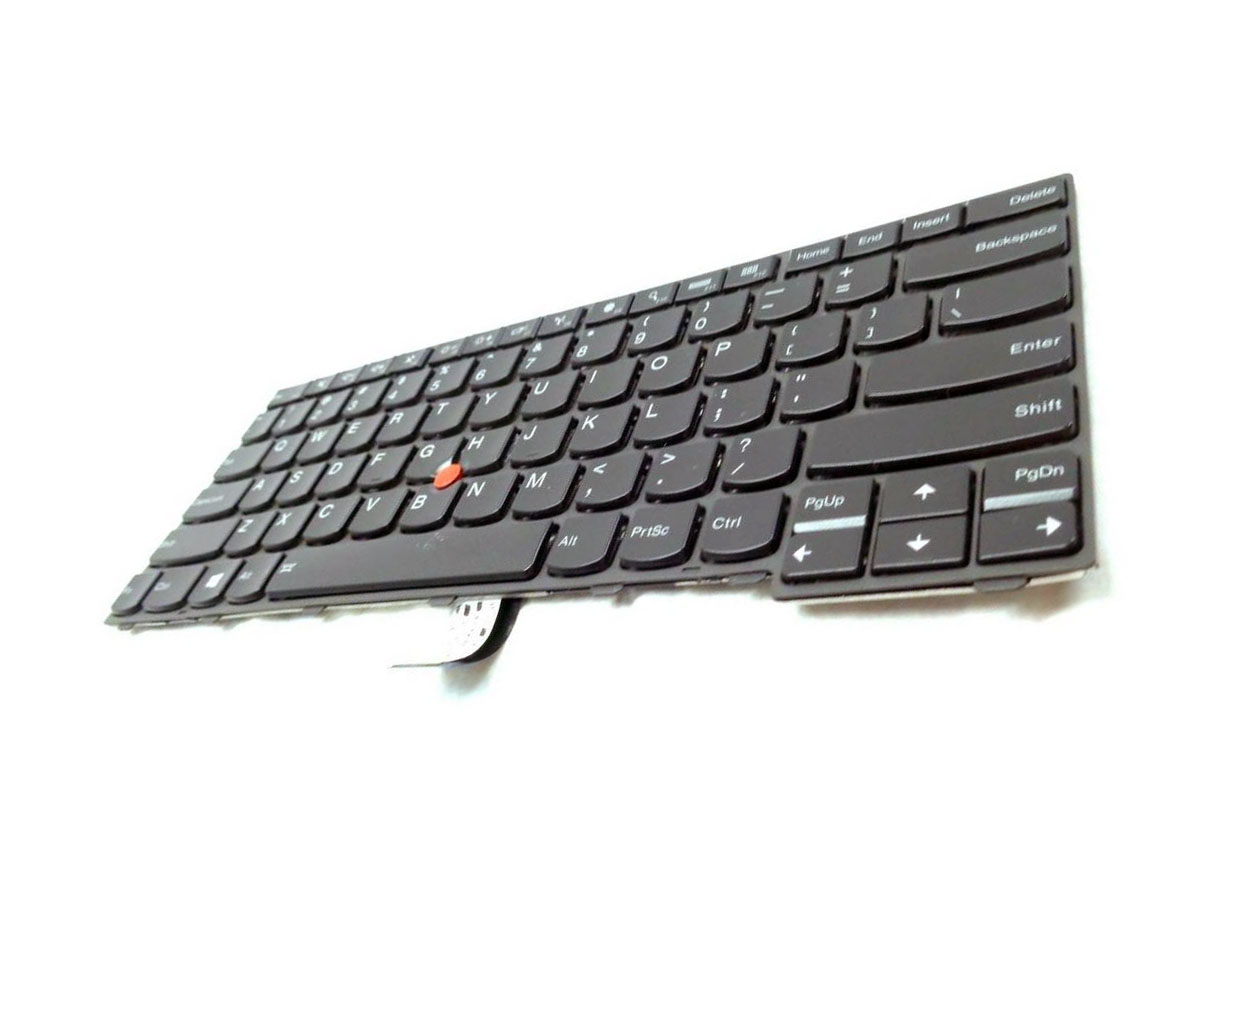 LENOVO 04X0155 KEYBOARD NOTEBOOK SPARE PART